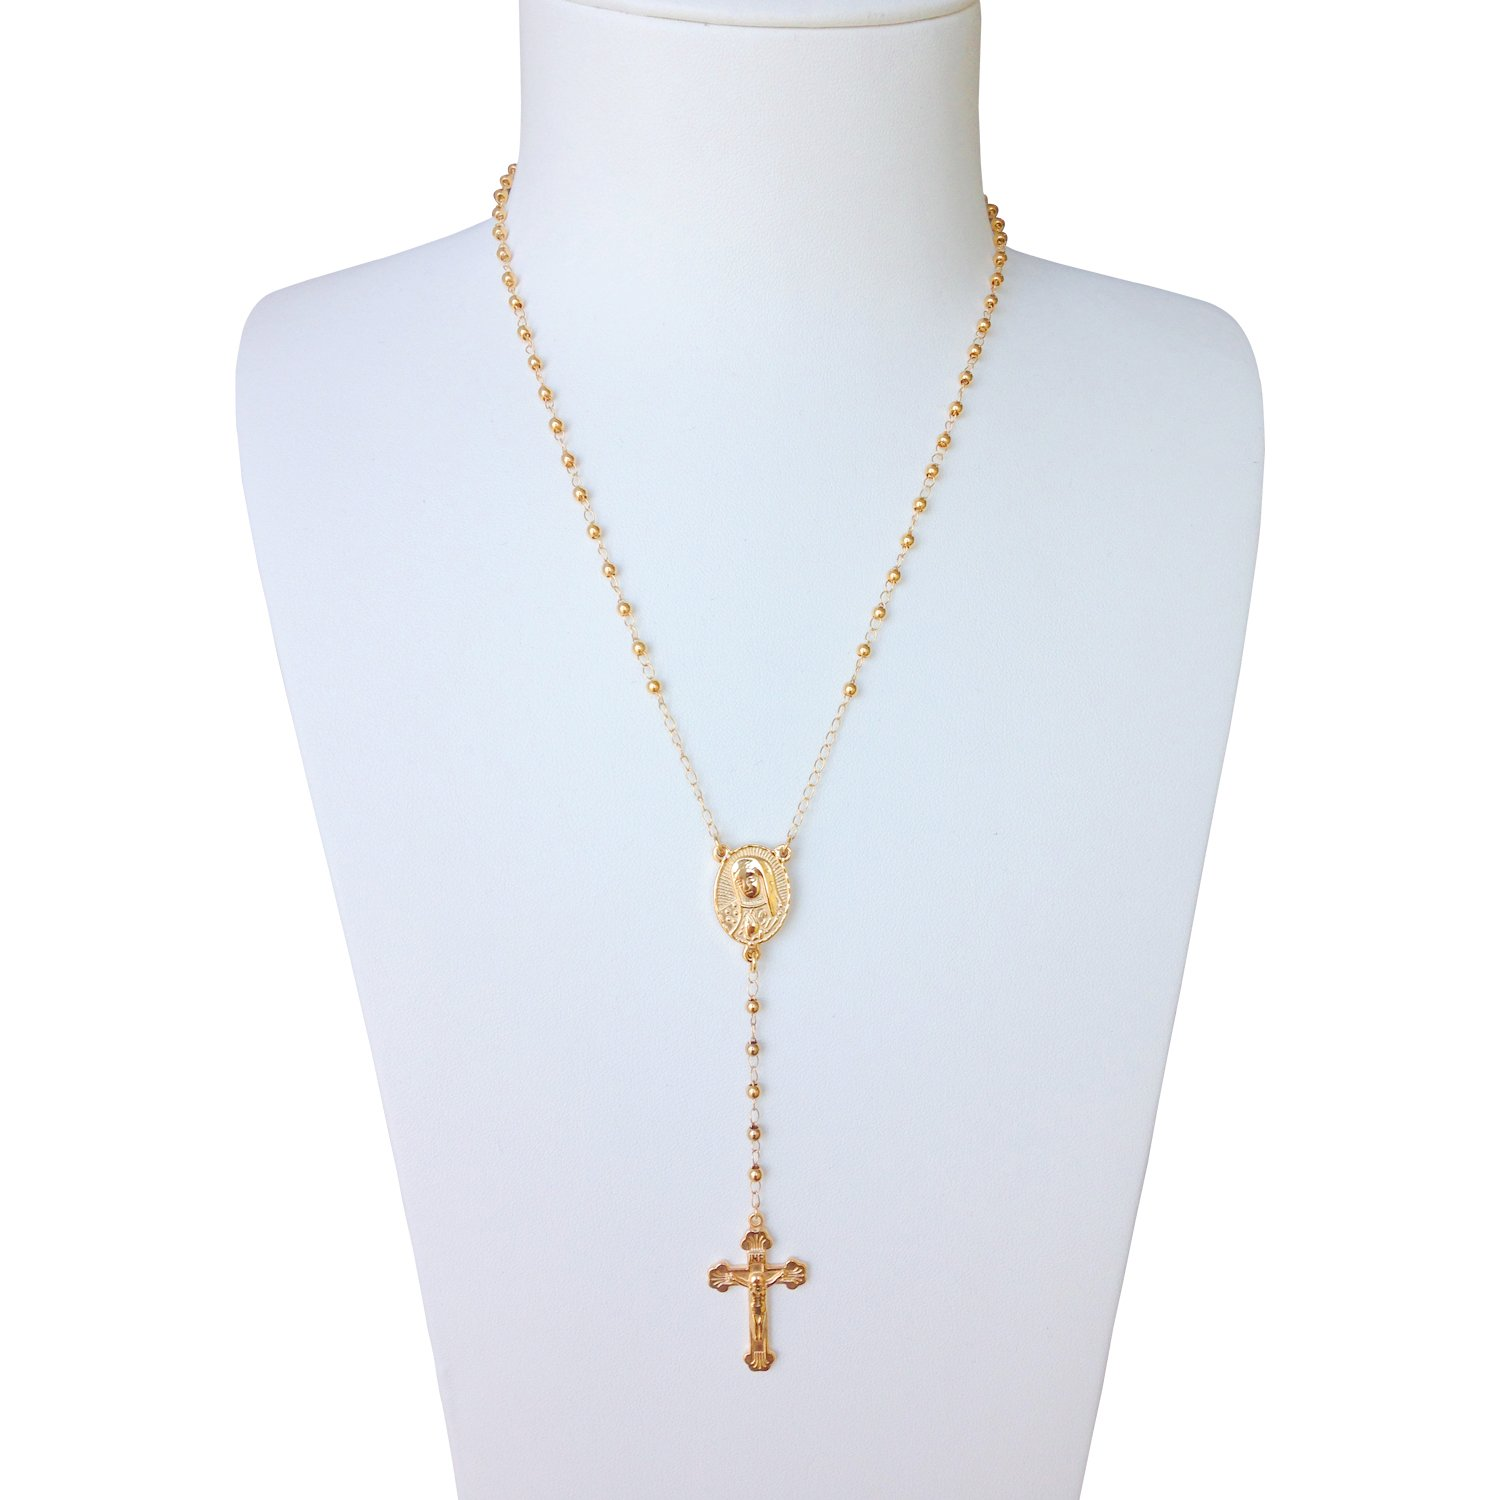 J.Shine Tiny Bead Gold Tone Stainless Steel Rosary Necklace Women Vintage Chain 16'' GN568